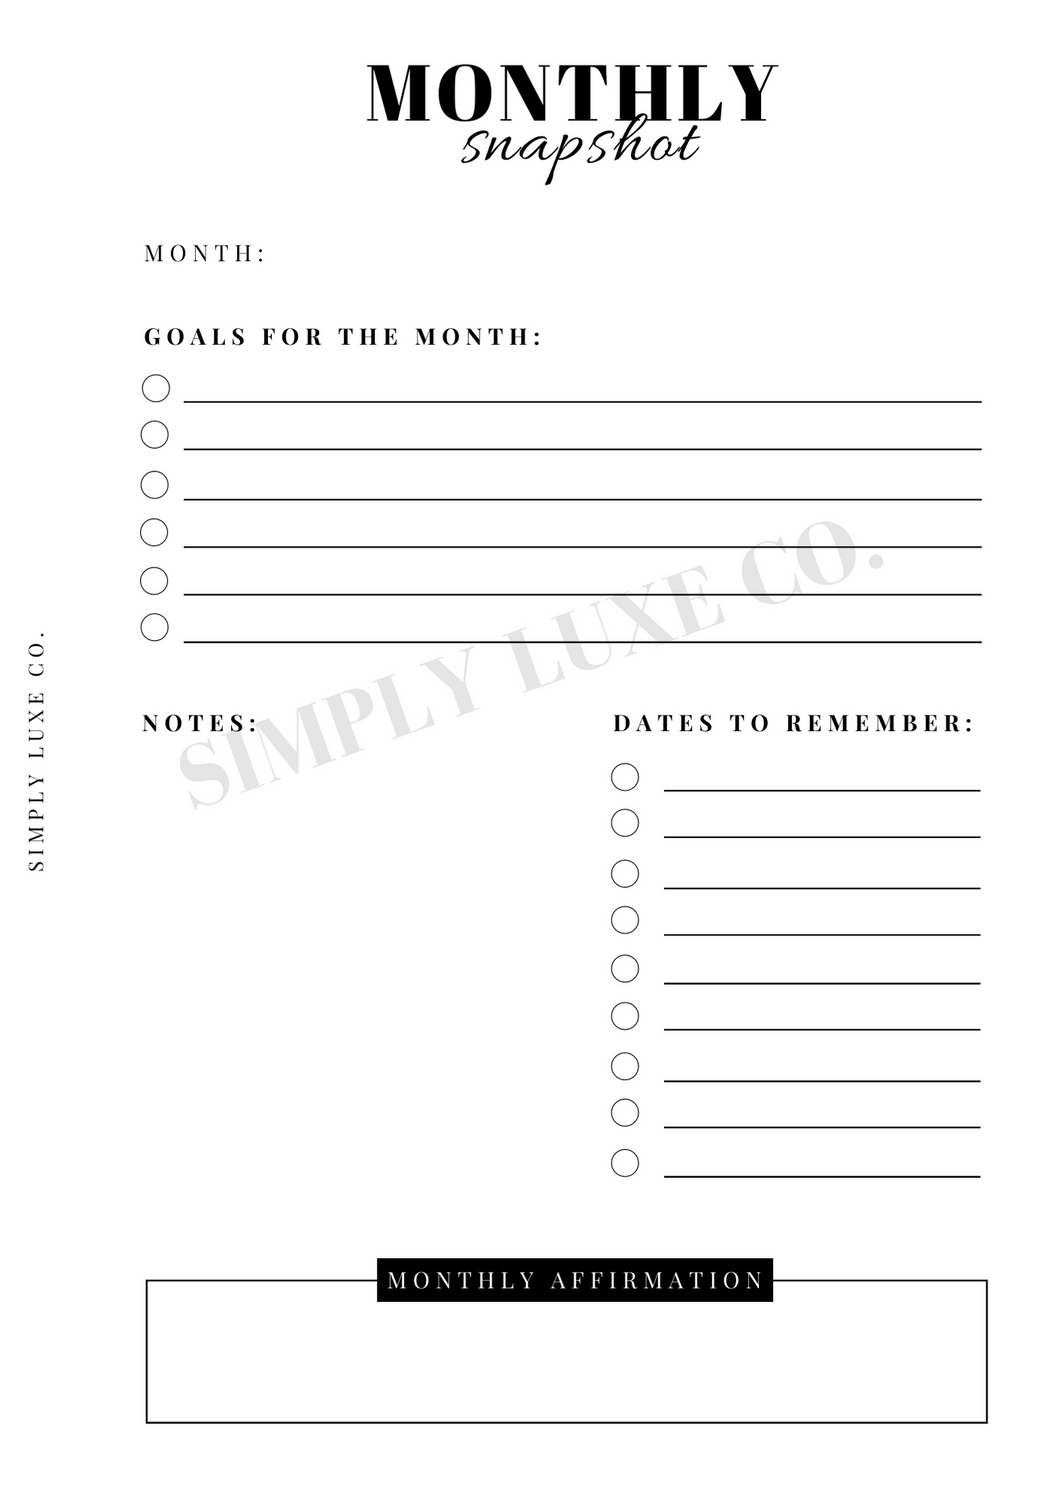 Monthly Snapshot Printable